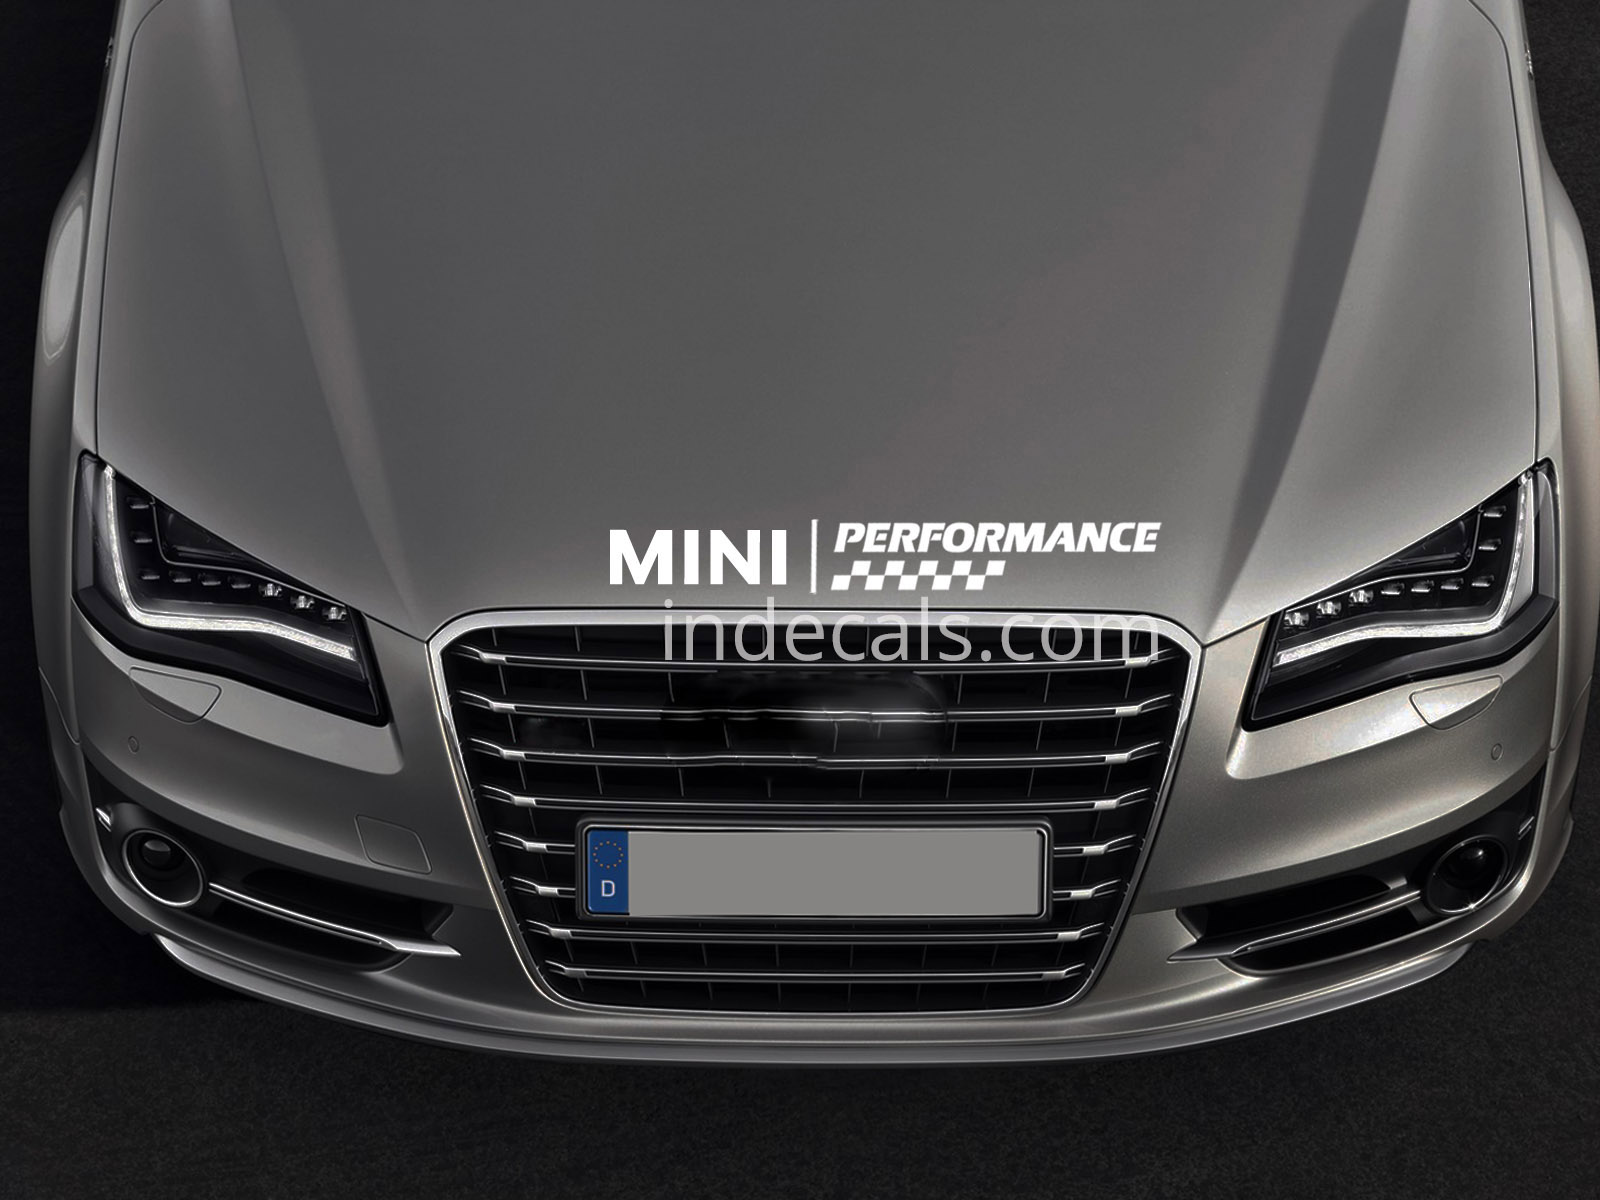 1 x Mini Peformance Sticker for Bonnet - White